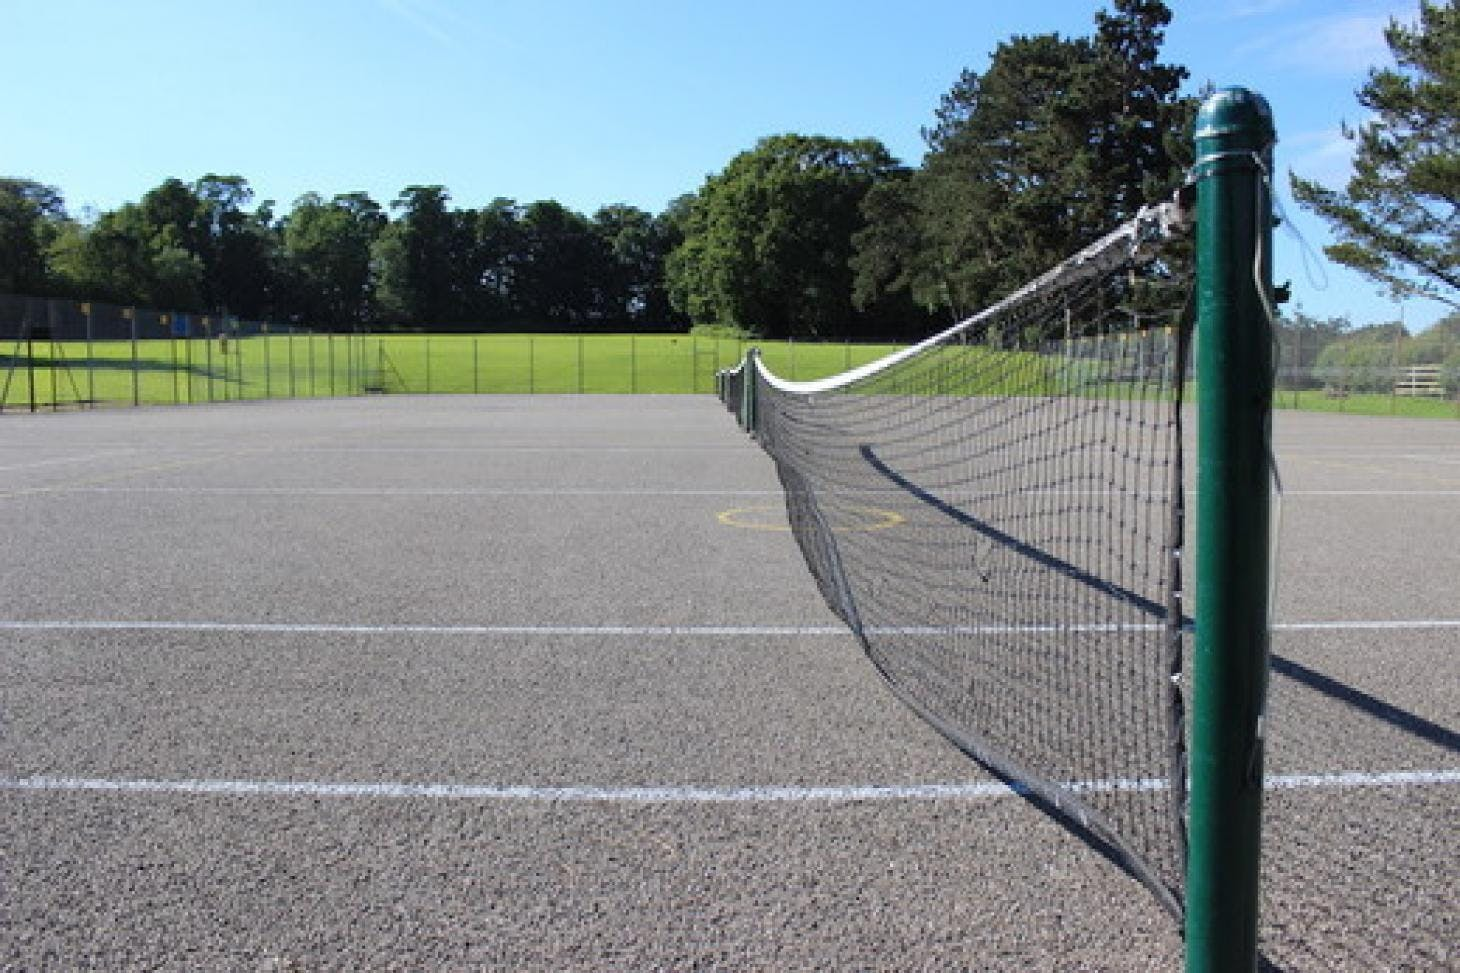 Putteridge High School Outdoor | Concrete tennis court